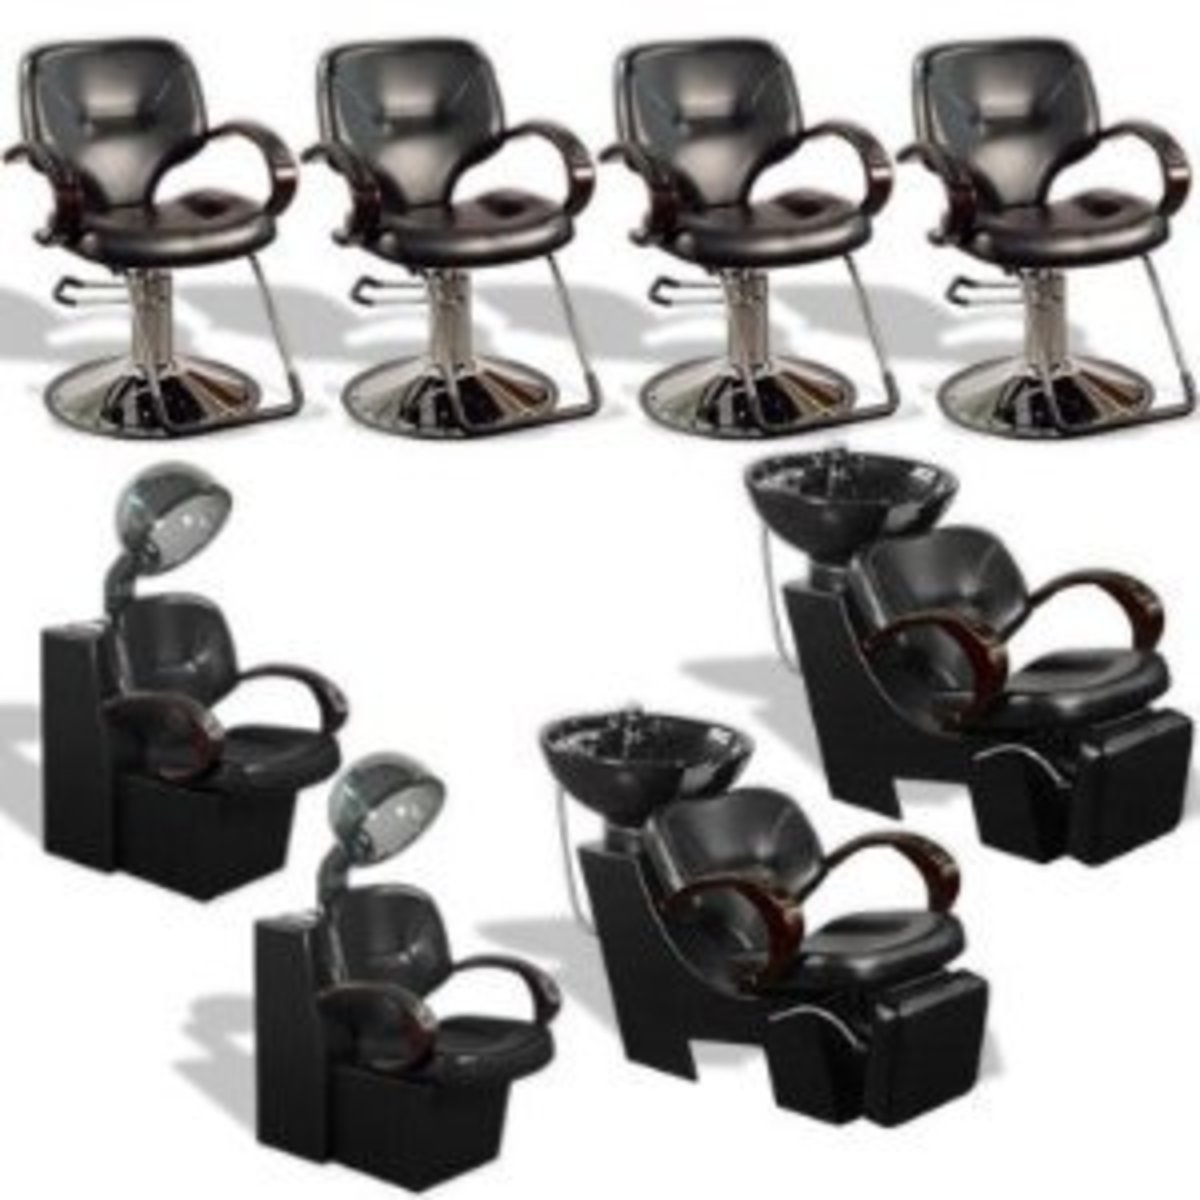 hair salon equipment wholesale furniture beauty hubpages salons business stations prices packages fast start